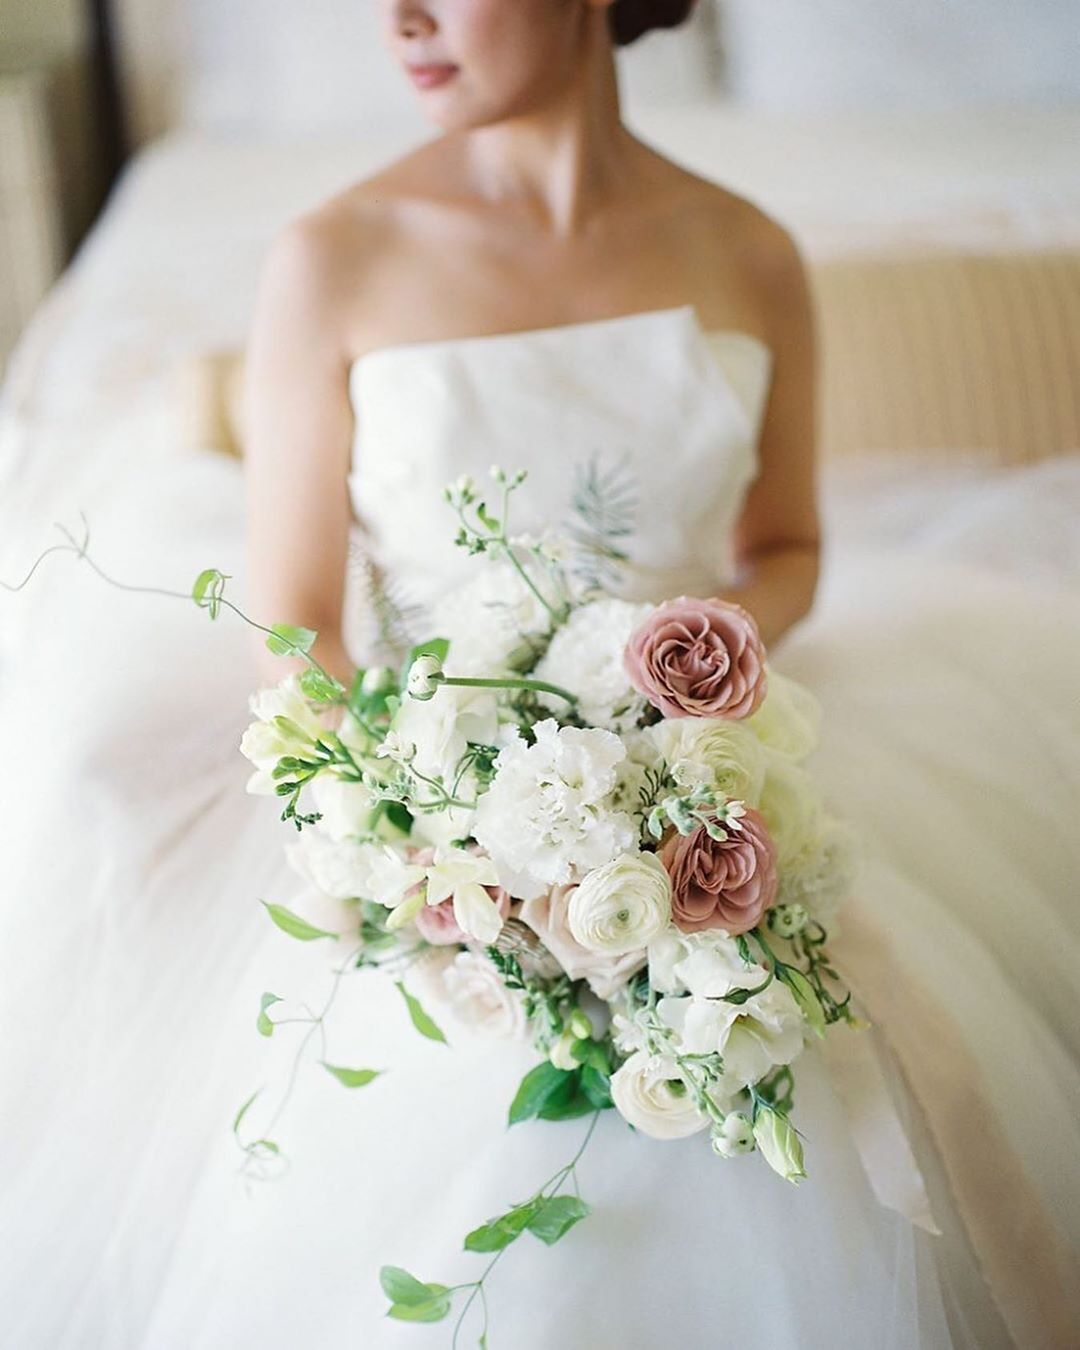 Pin By Rebecca Chen On Flowers In 2020 Bridal Bouquet